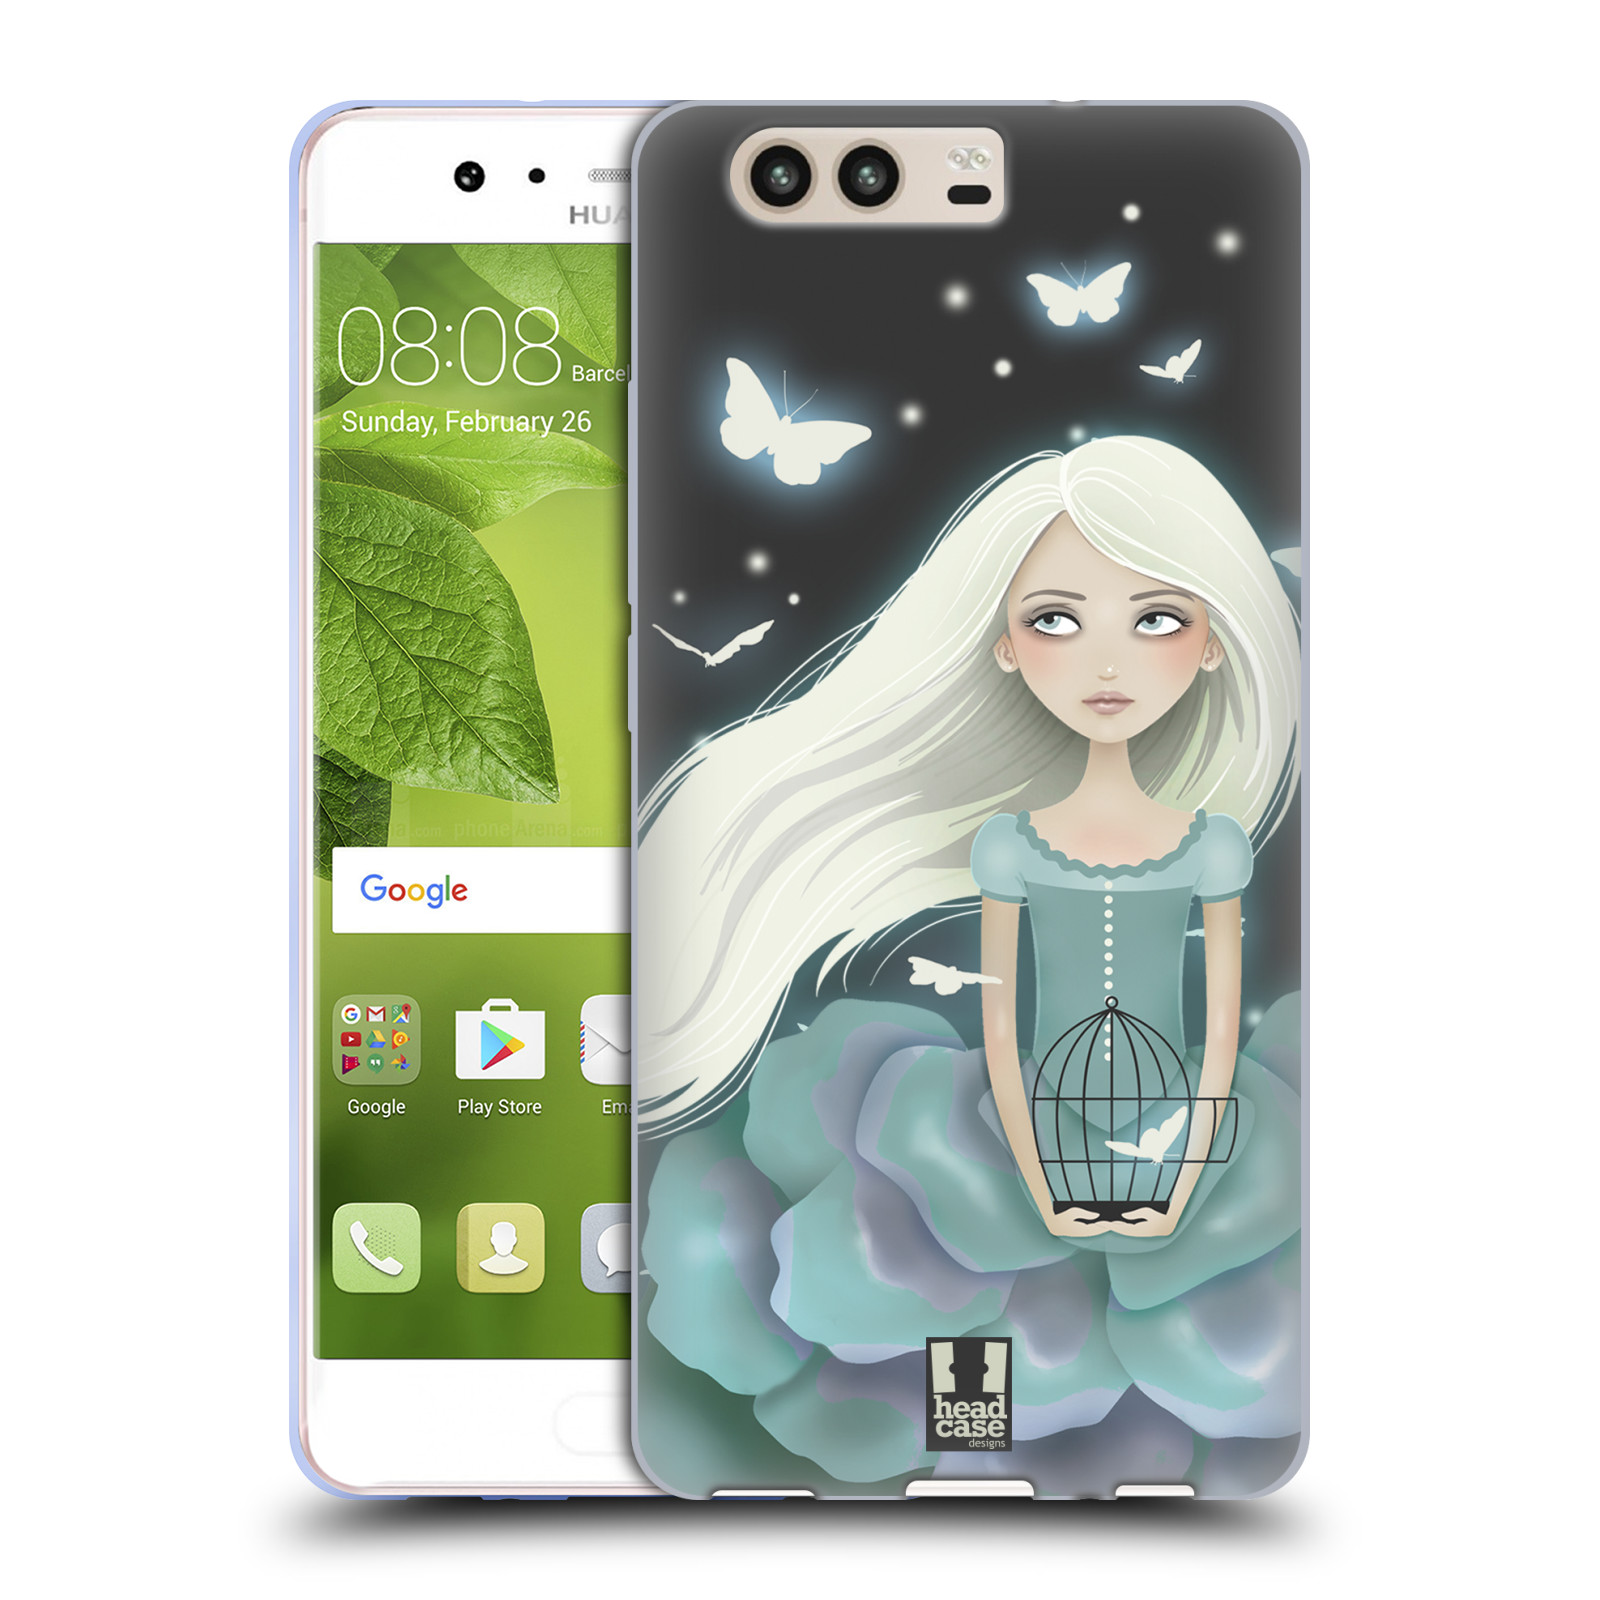 HEAD-CASE-DESIGNS-BELLE-MELANCOLIE-ETUI-COQUE-EN-GEL-MOLLE-POUR-HUAWEI-P10